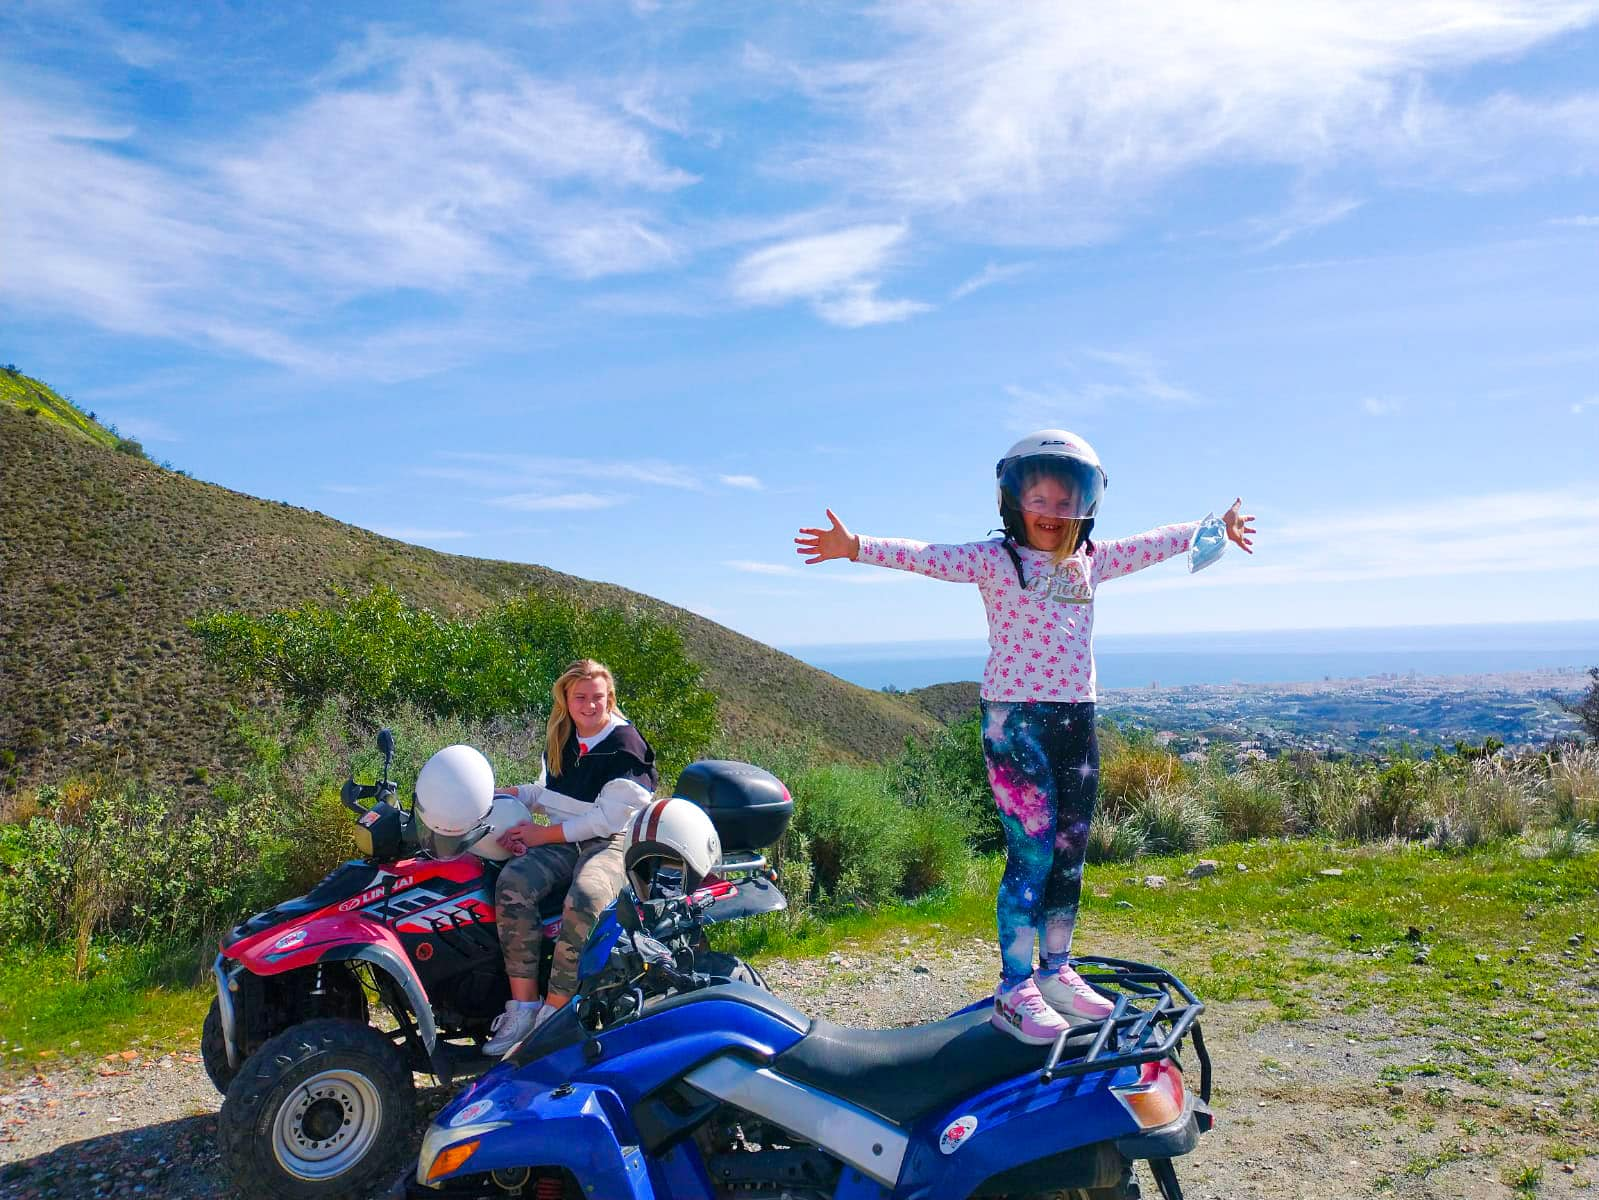 a young girls standing on a bike with arms wide spread, an older sister sitting on another bike laughing